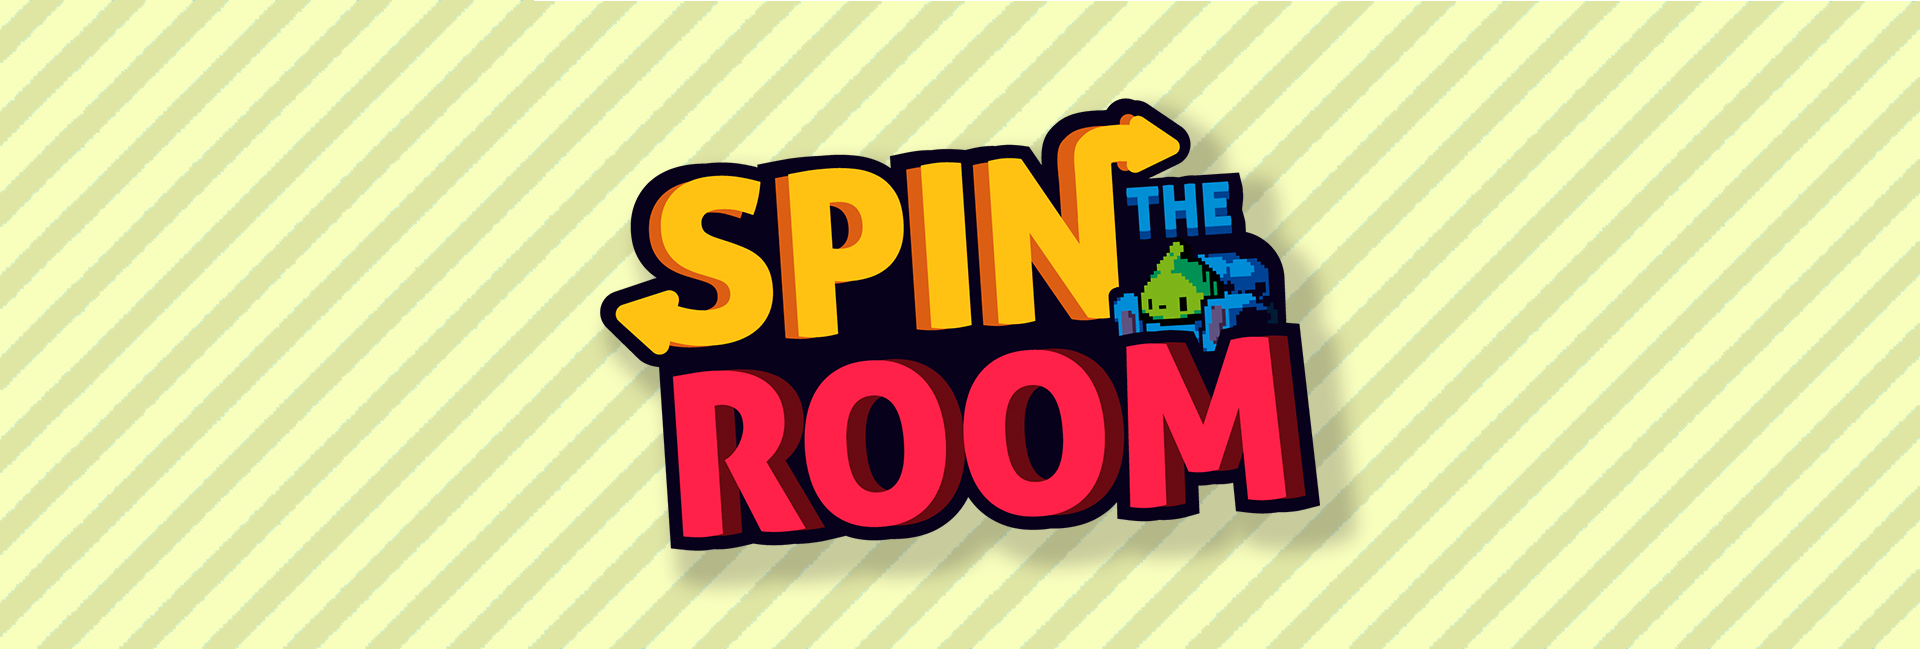 Spin the Room